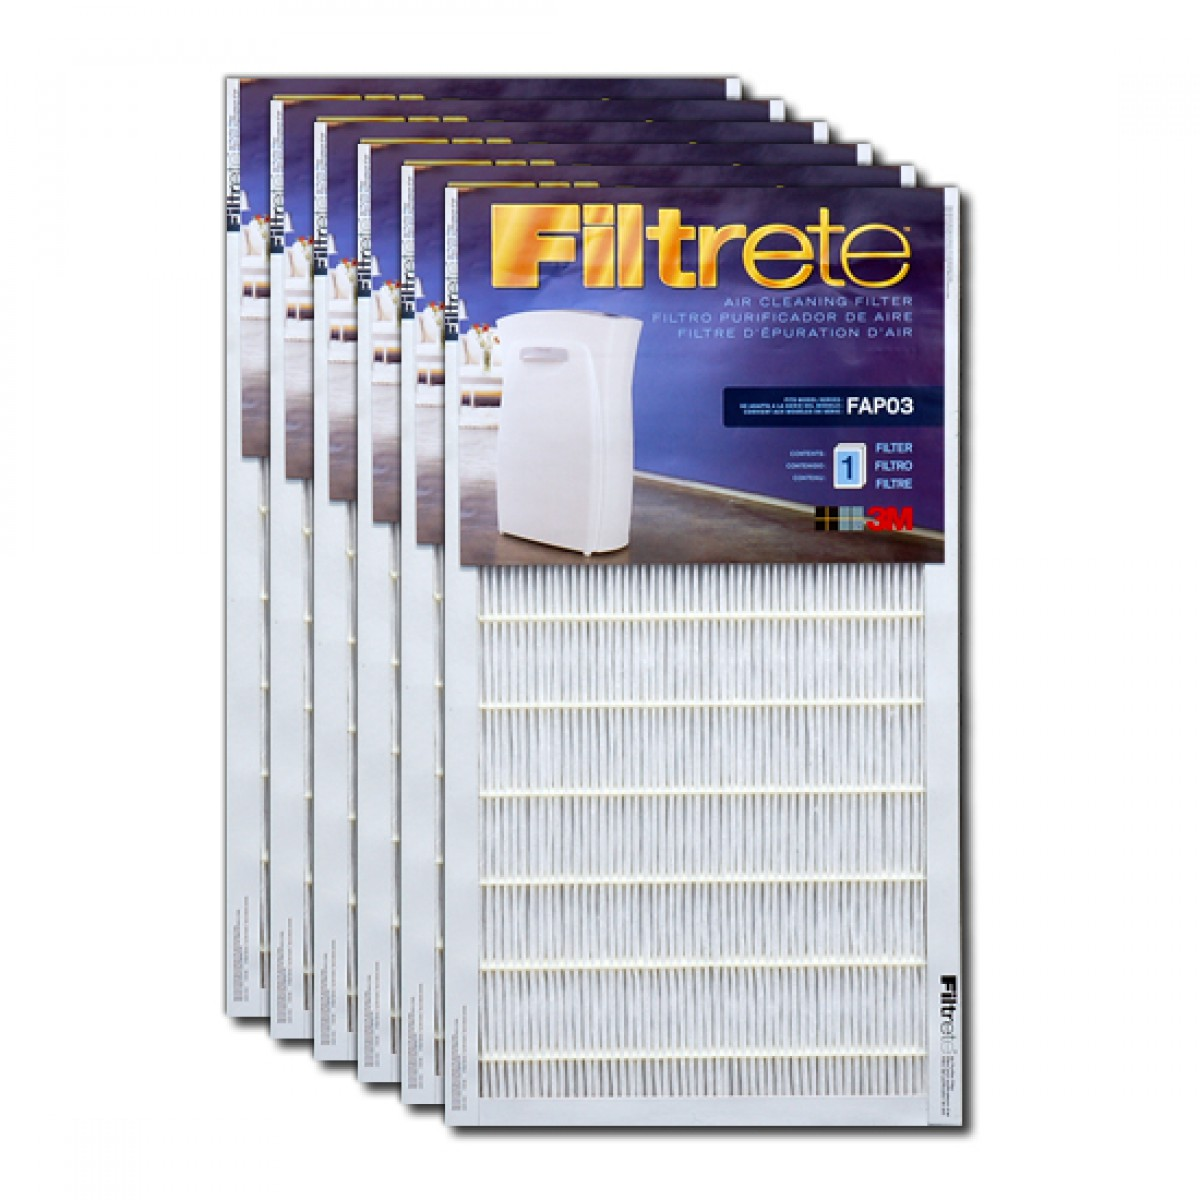 fapf036 filtrete ultra clean air purifier replacement filter 6pack - Filtrete Air Filter